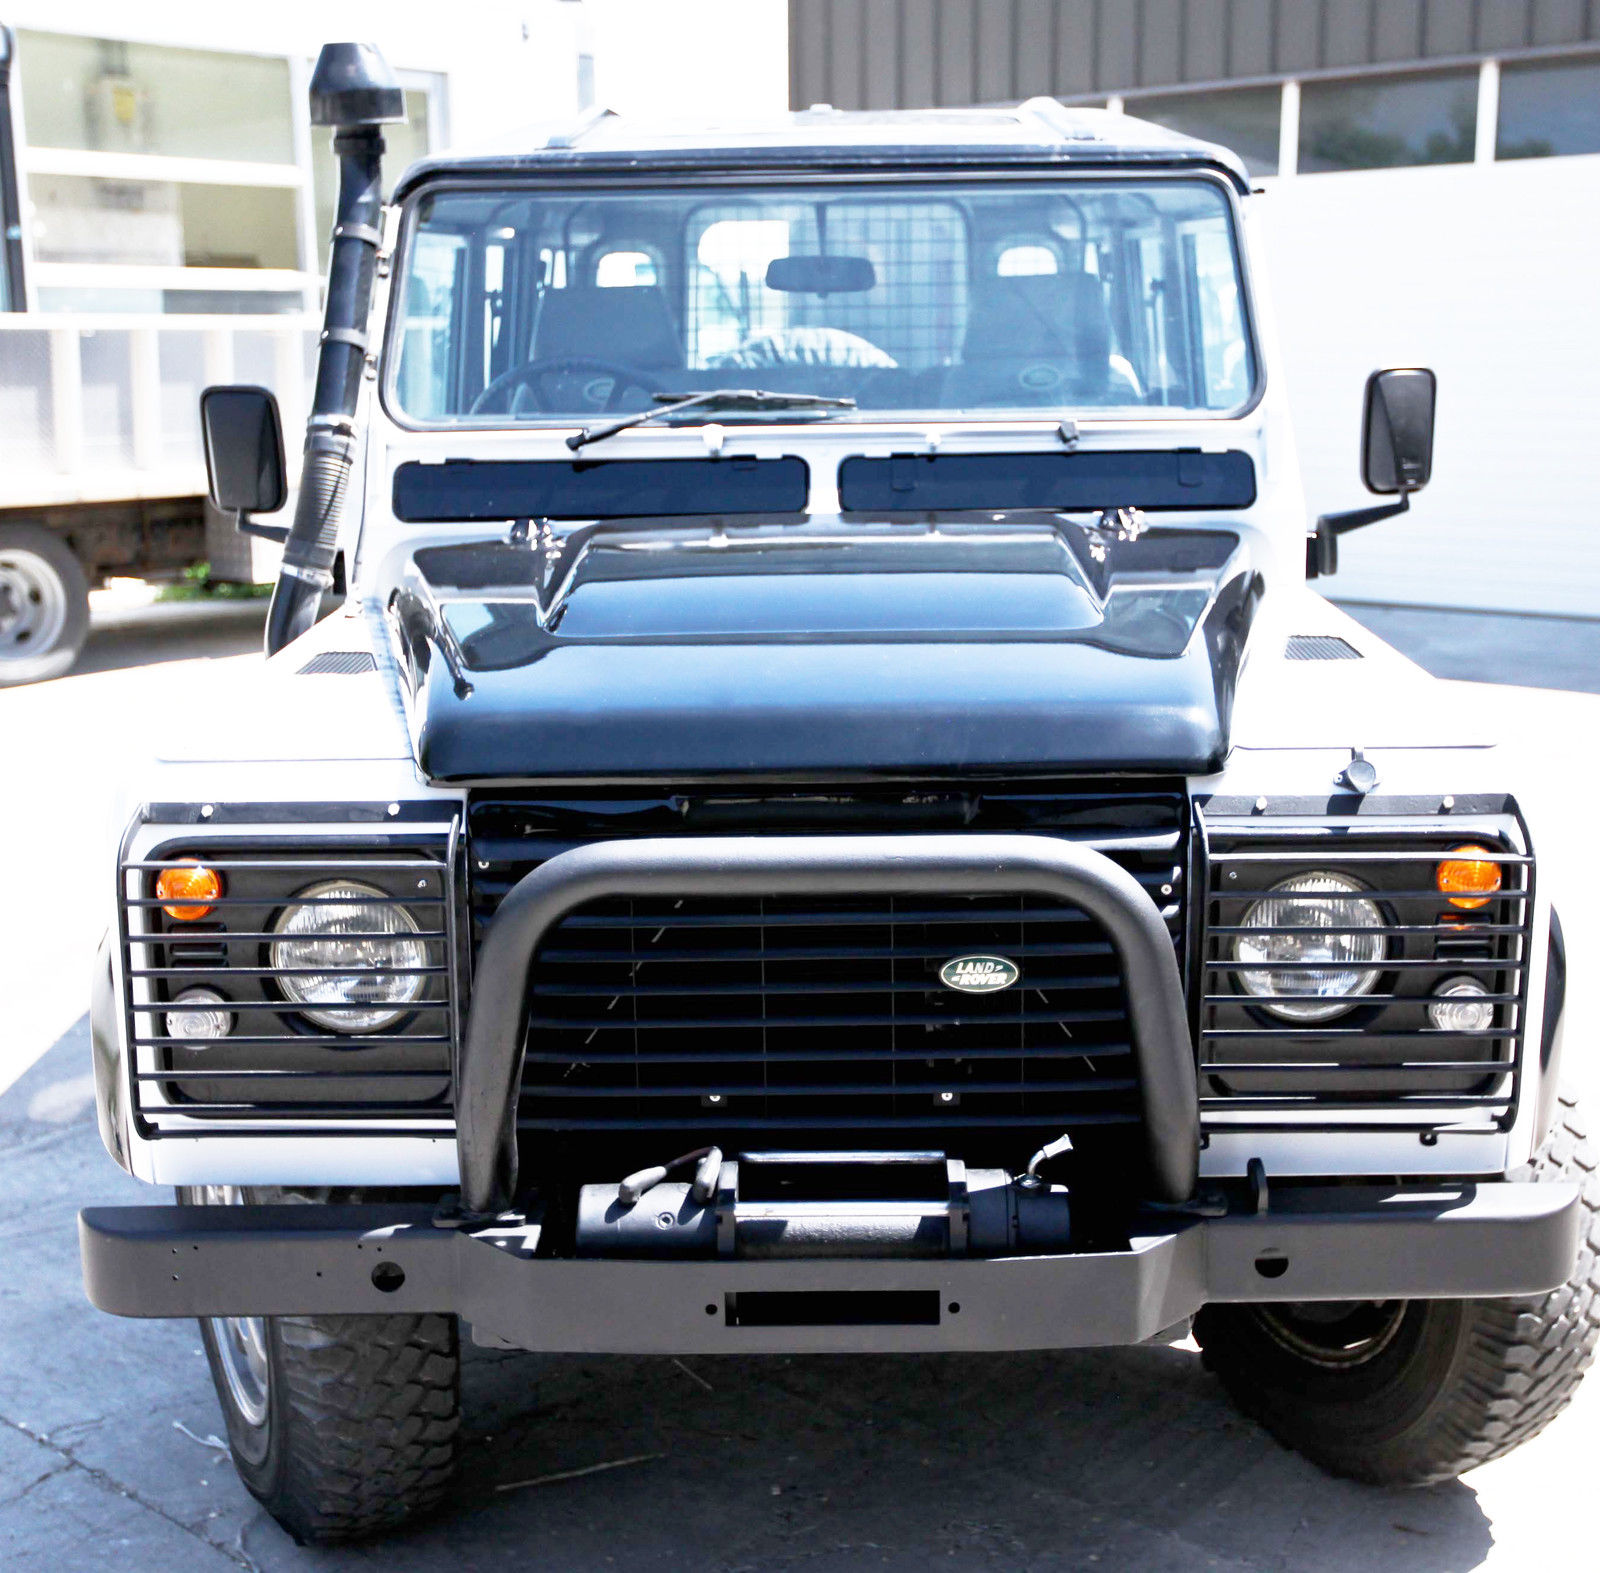 Land Rover Defender 110 With A Nice Restoration. Diesel